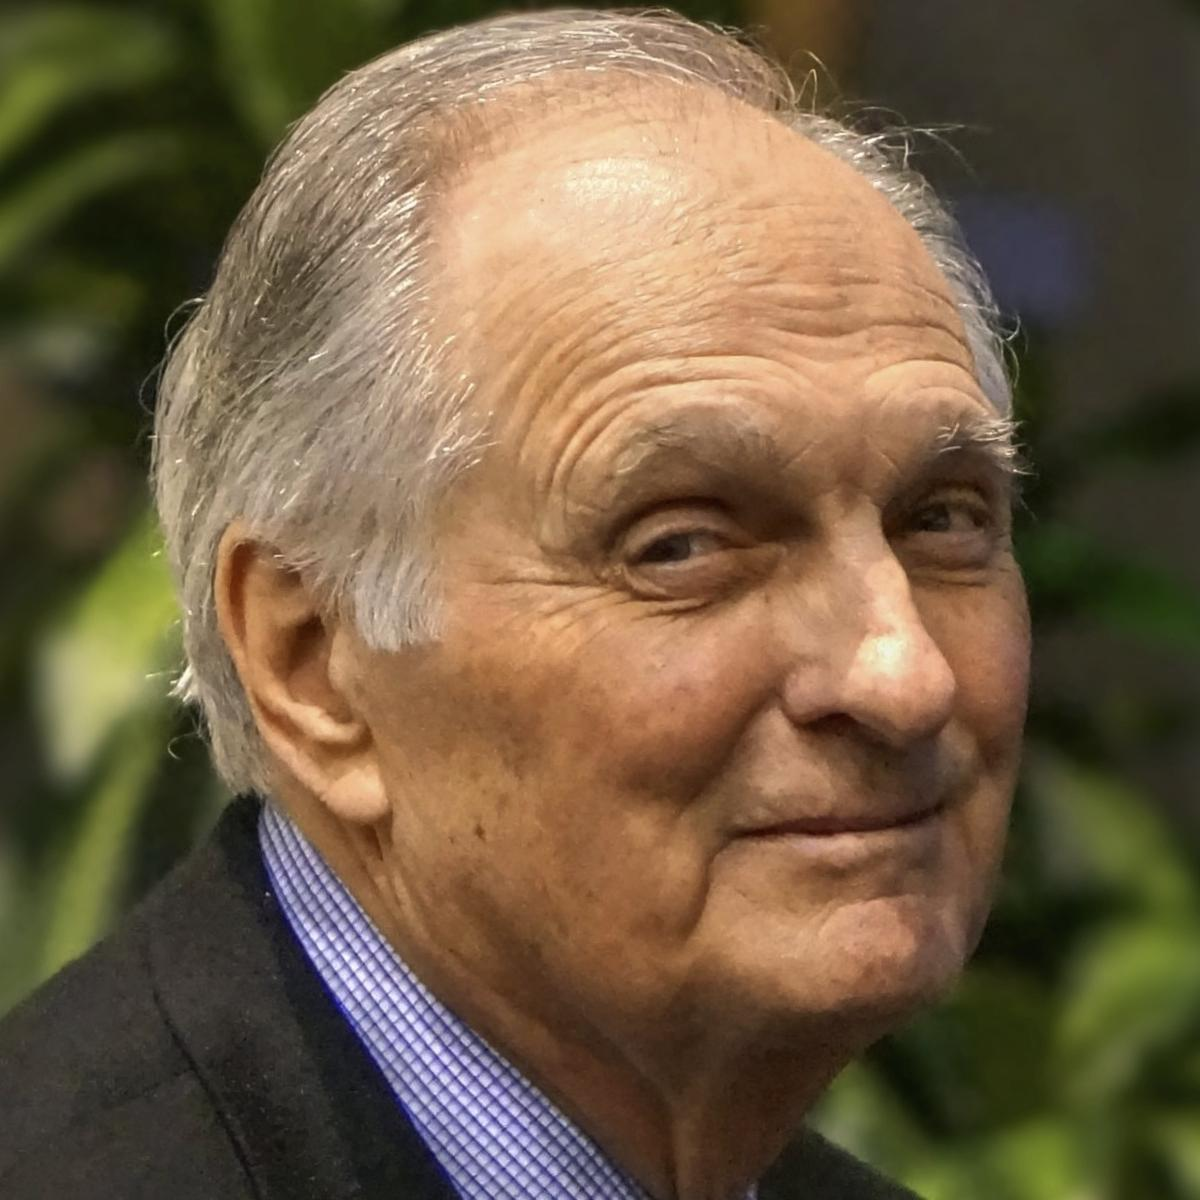 40 Meter To Feet Alan Alda Bio Net Worth Height Facts Dead Or Alive